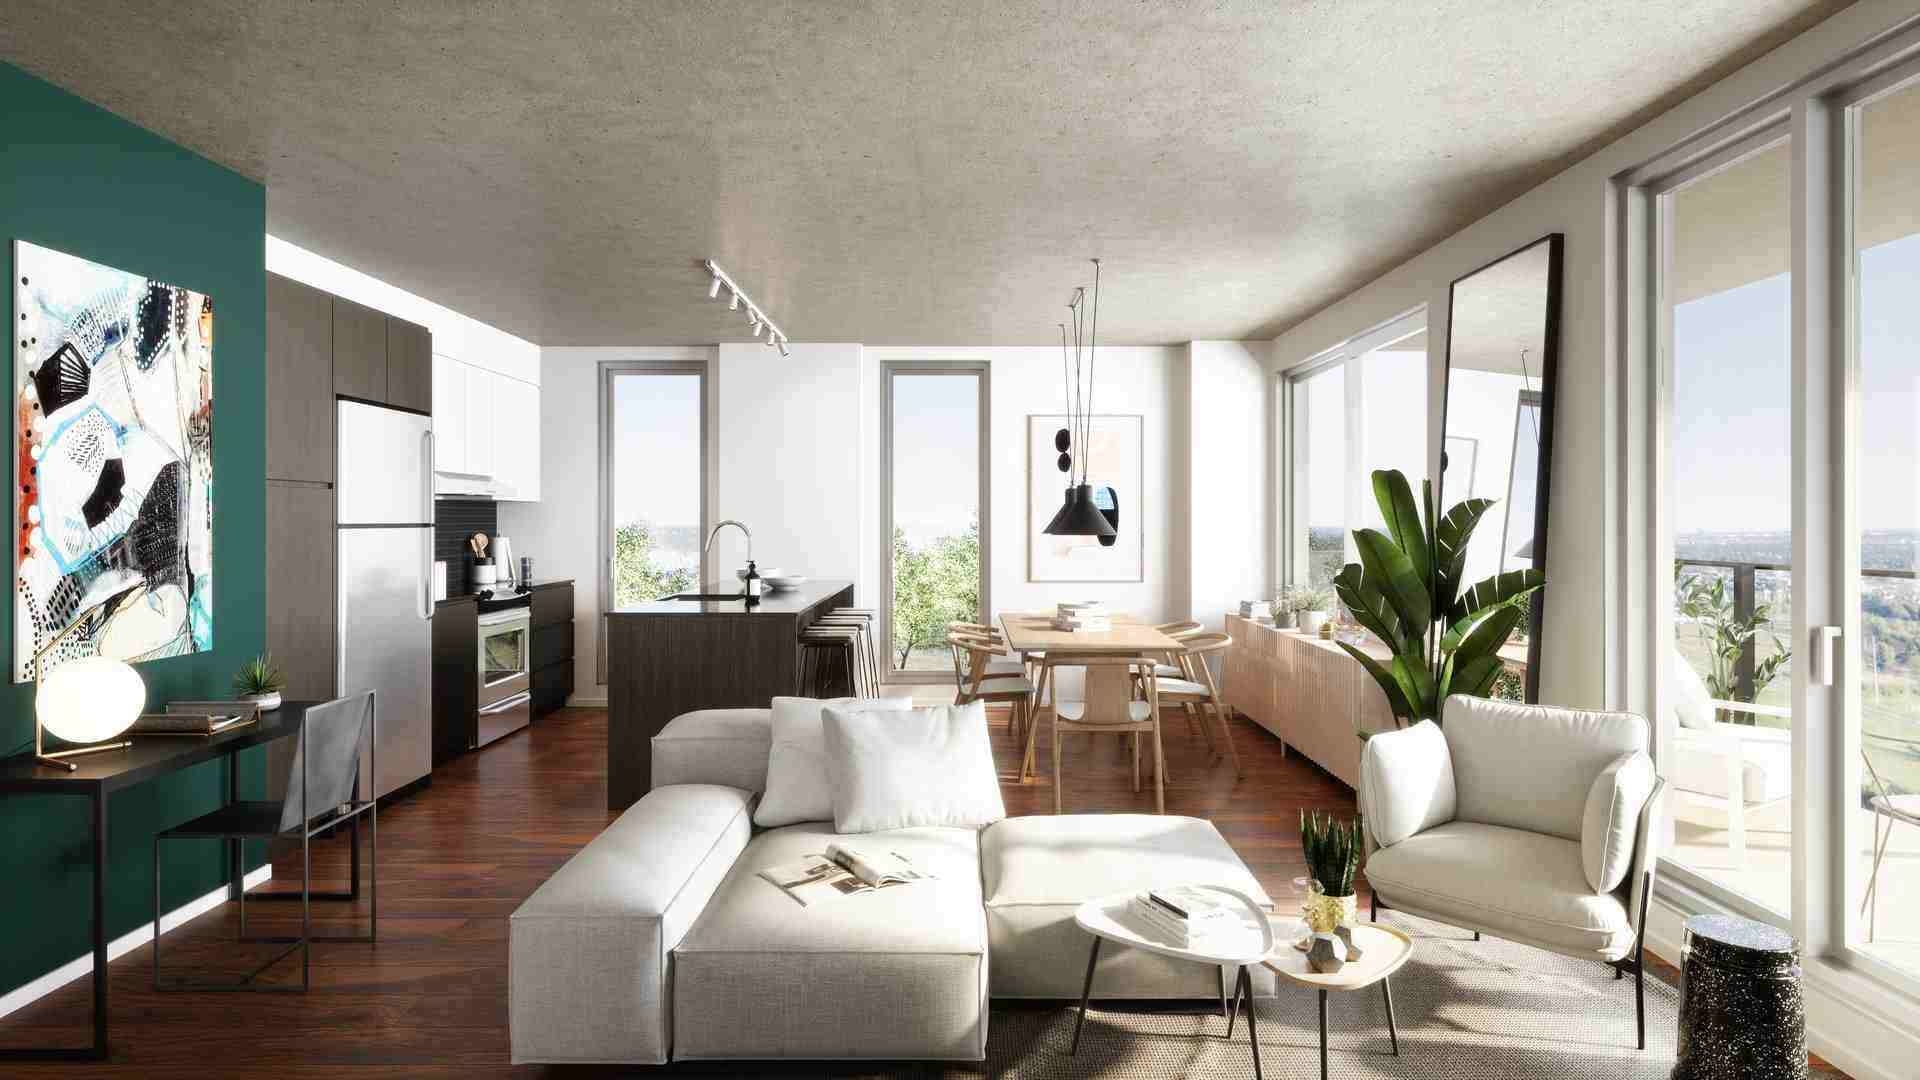 Grand 4 ½ à louer à Brossard par Devimco Appartements